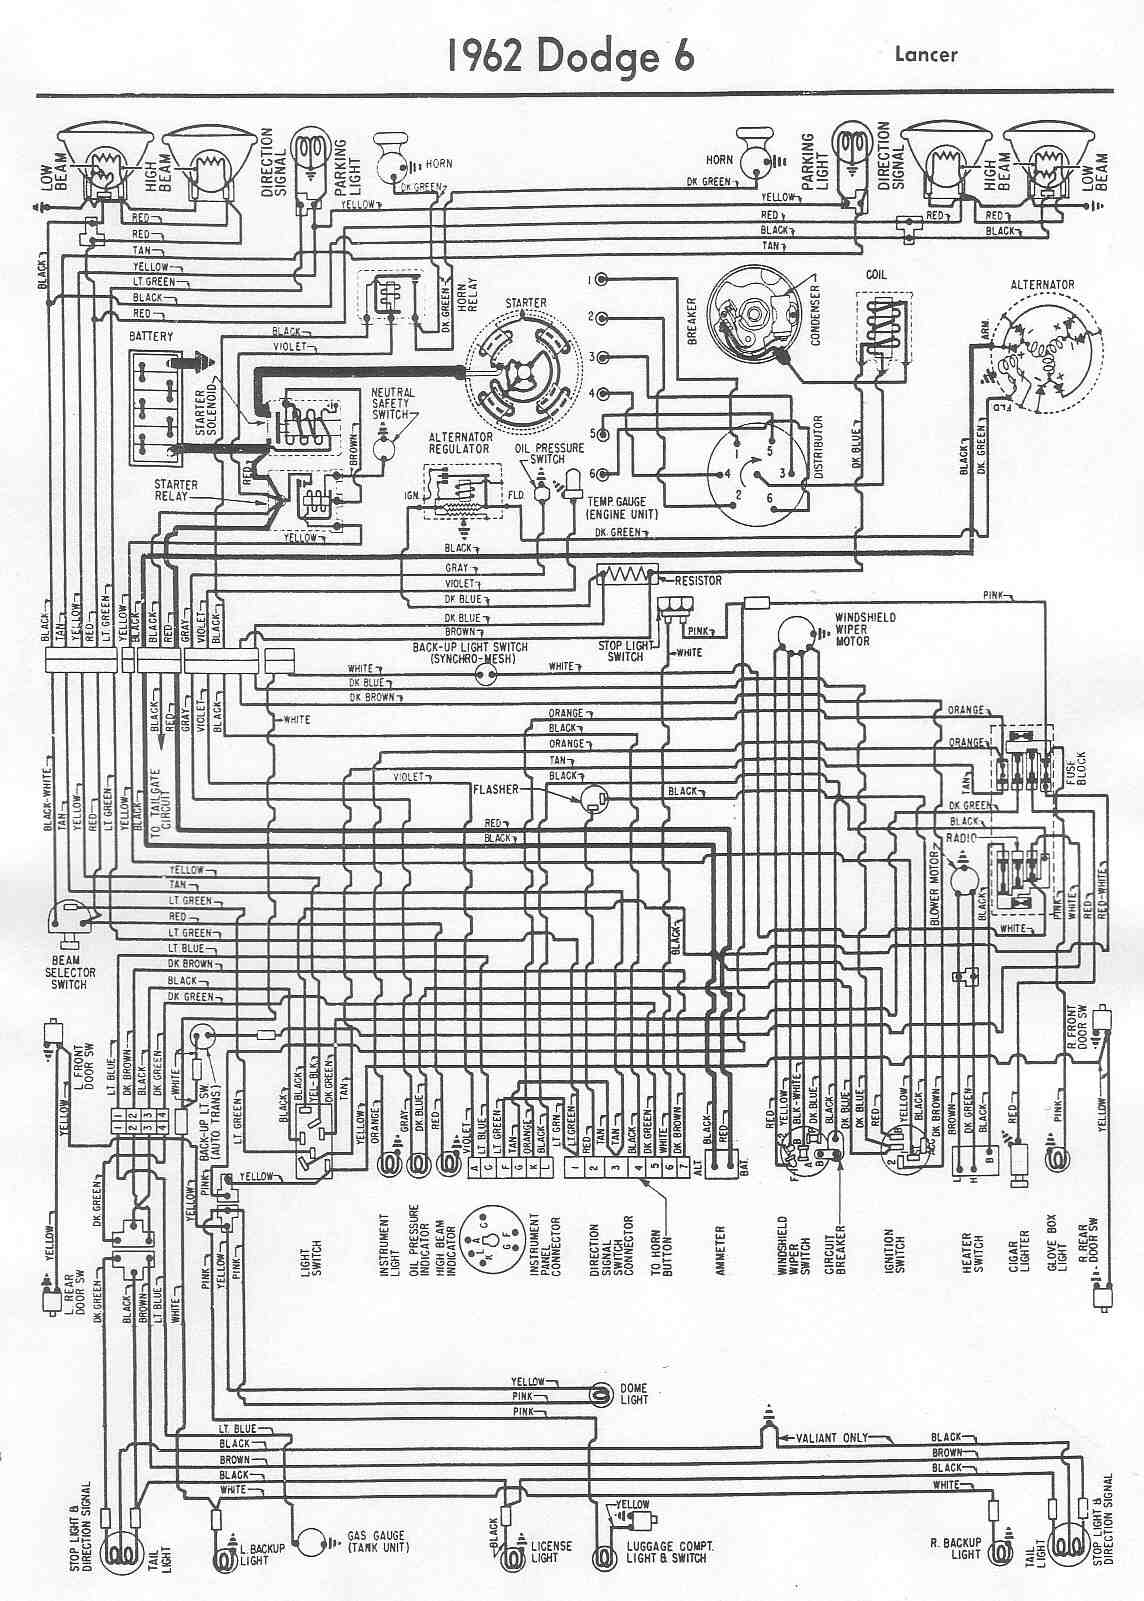 Dodge - Car Manuals, Wiring Diagrams PDF & Fault Codes